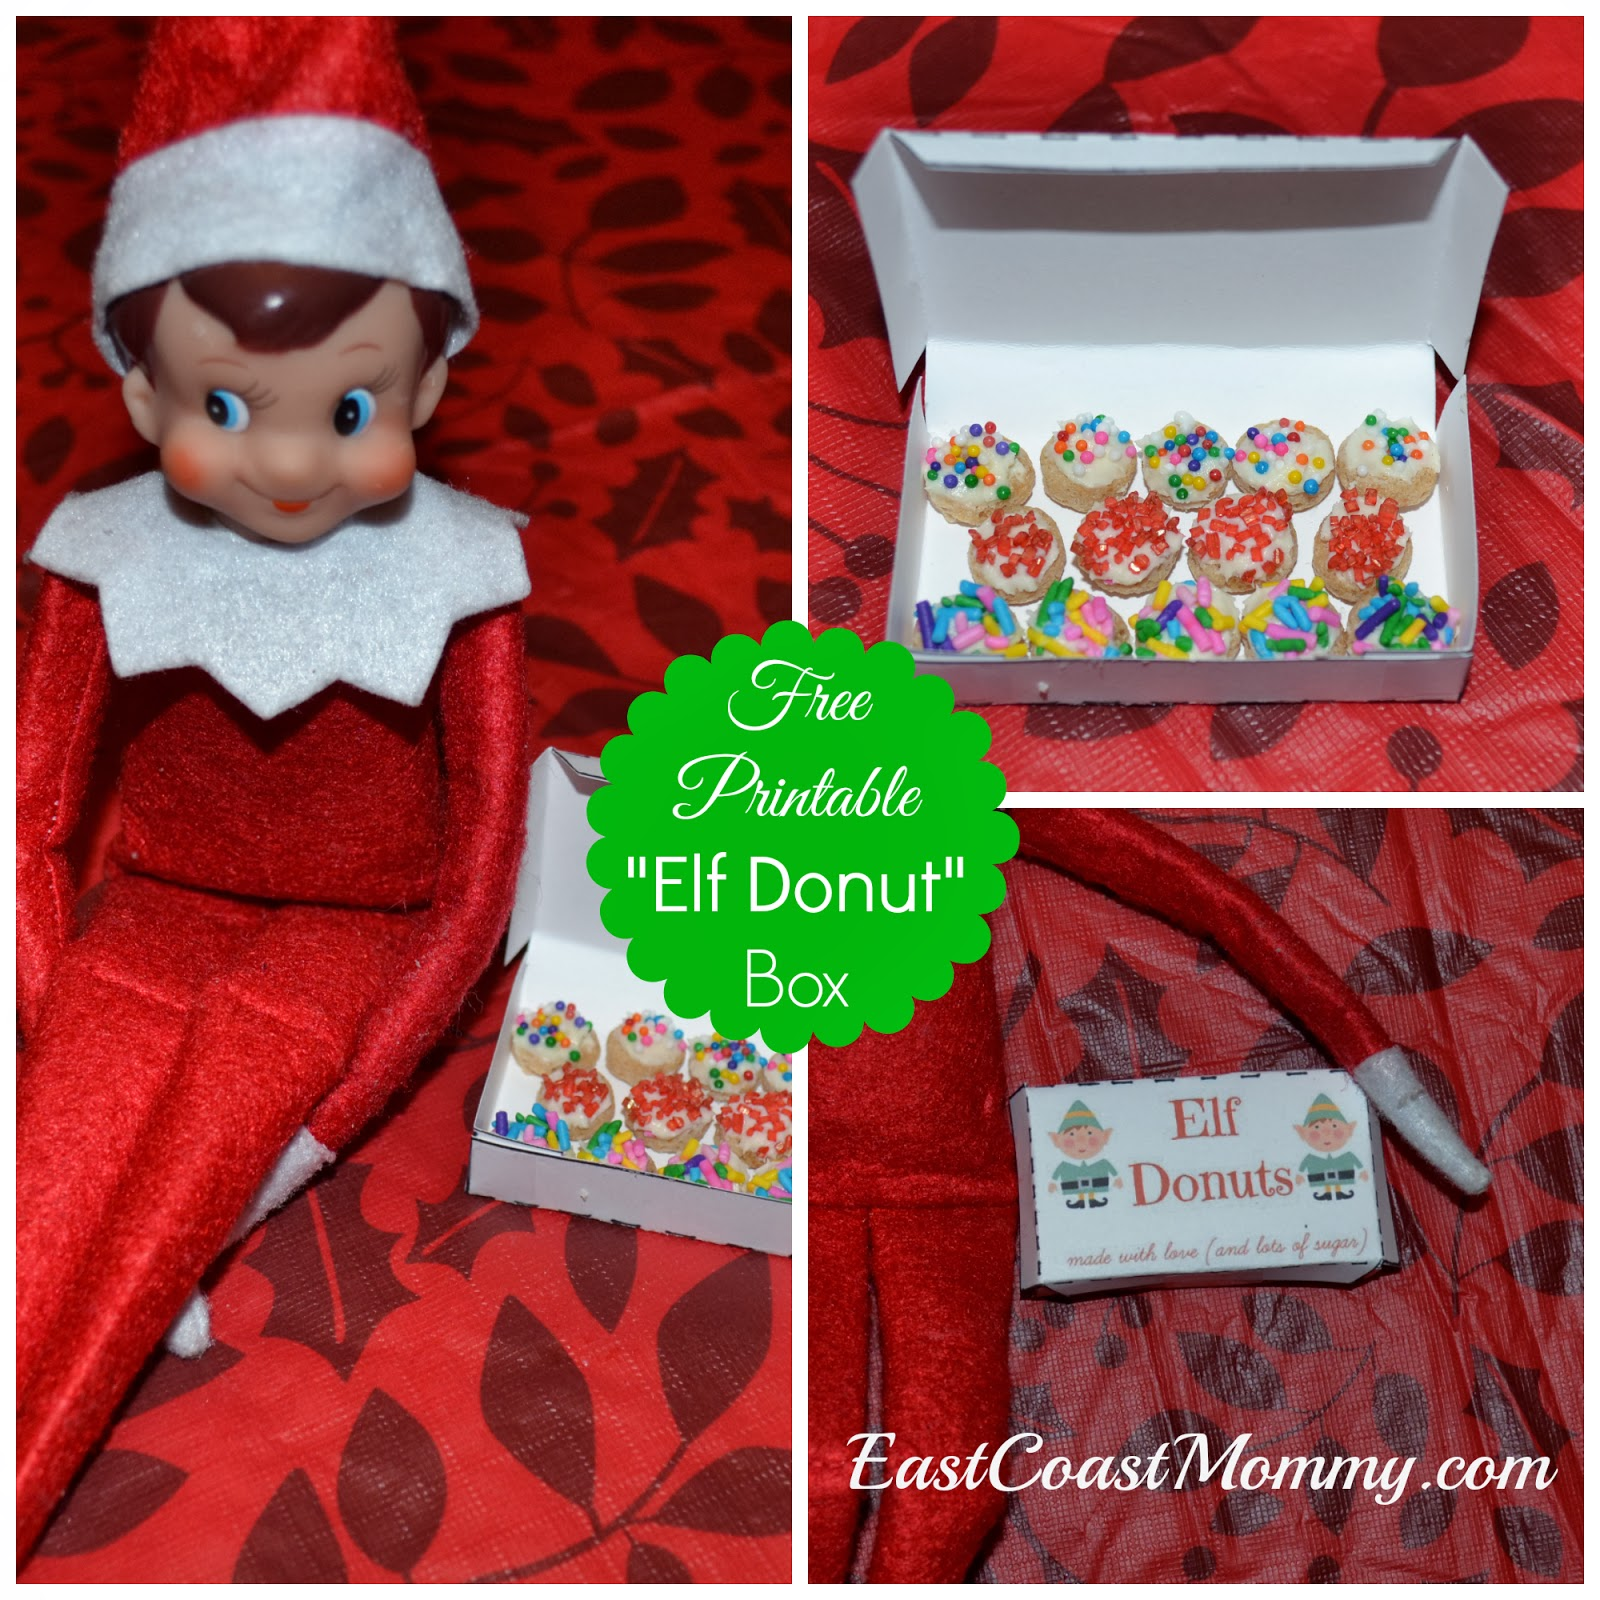 East Coast Mommy Elf On The Shelf Donuts Free Printable Box